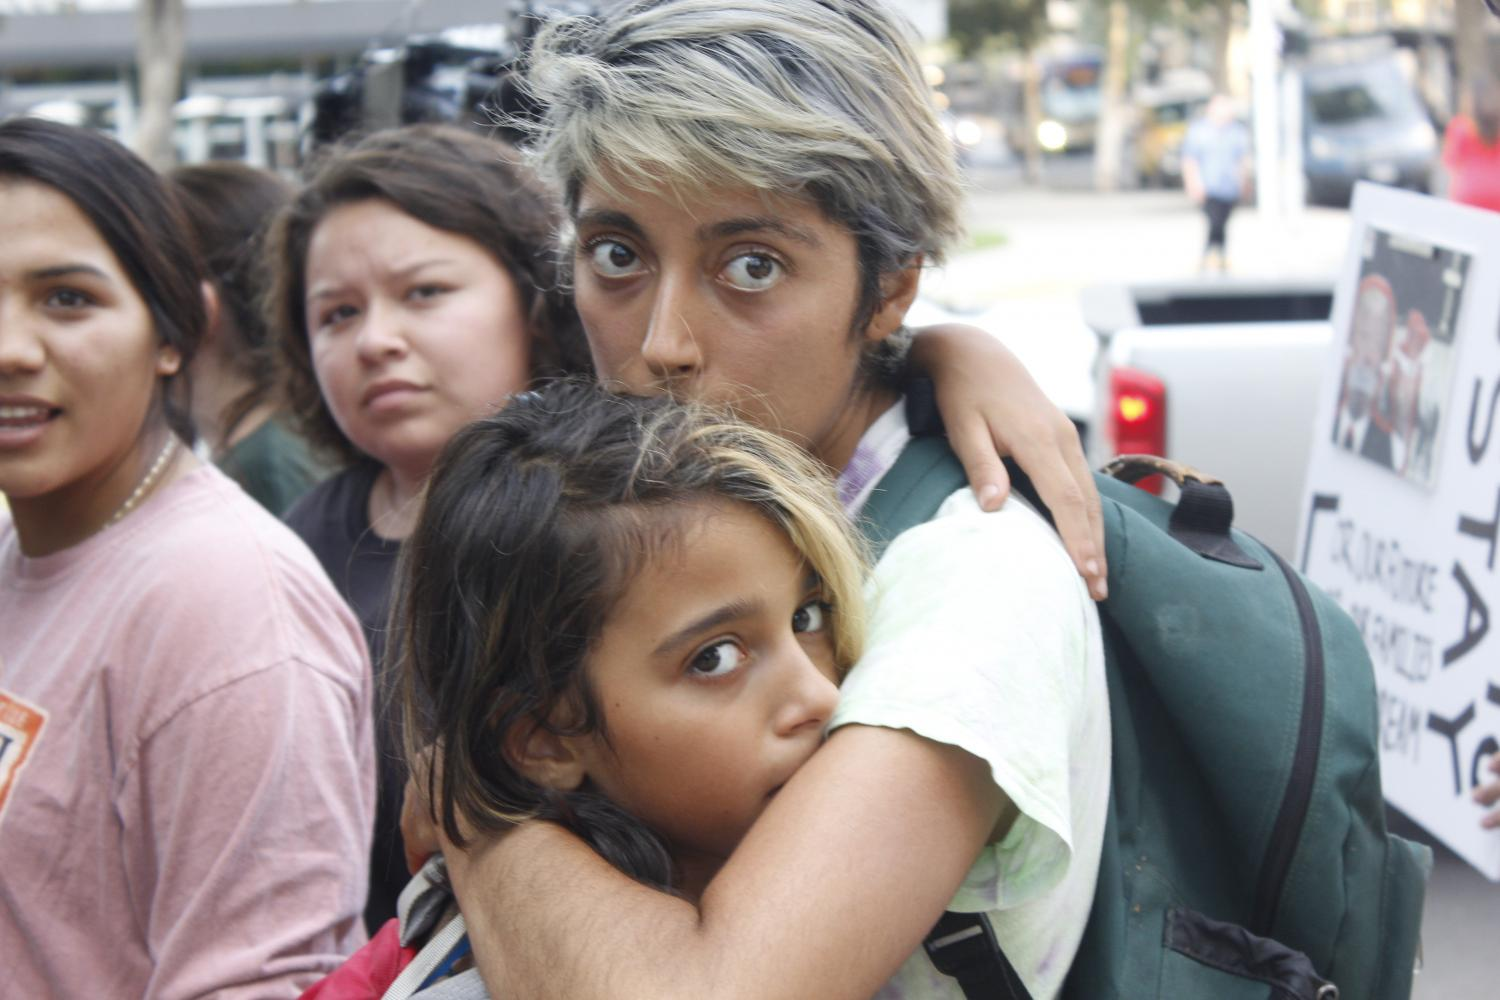 Diana Monroy hugs her daughter during a protest at Capitol Mall in Sacramento on Sept. 5. The protest was in response to the Trump administration's announcement that it would seek to end Deferred Action for Childhood Arrivals.